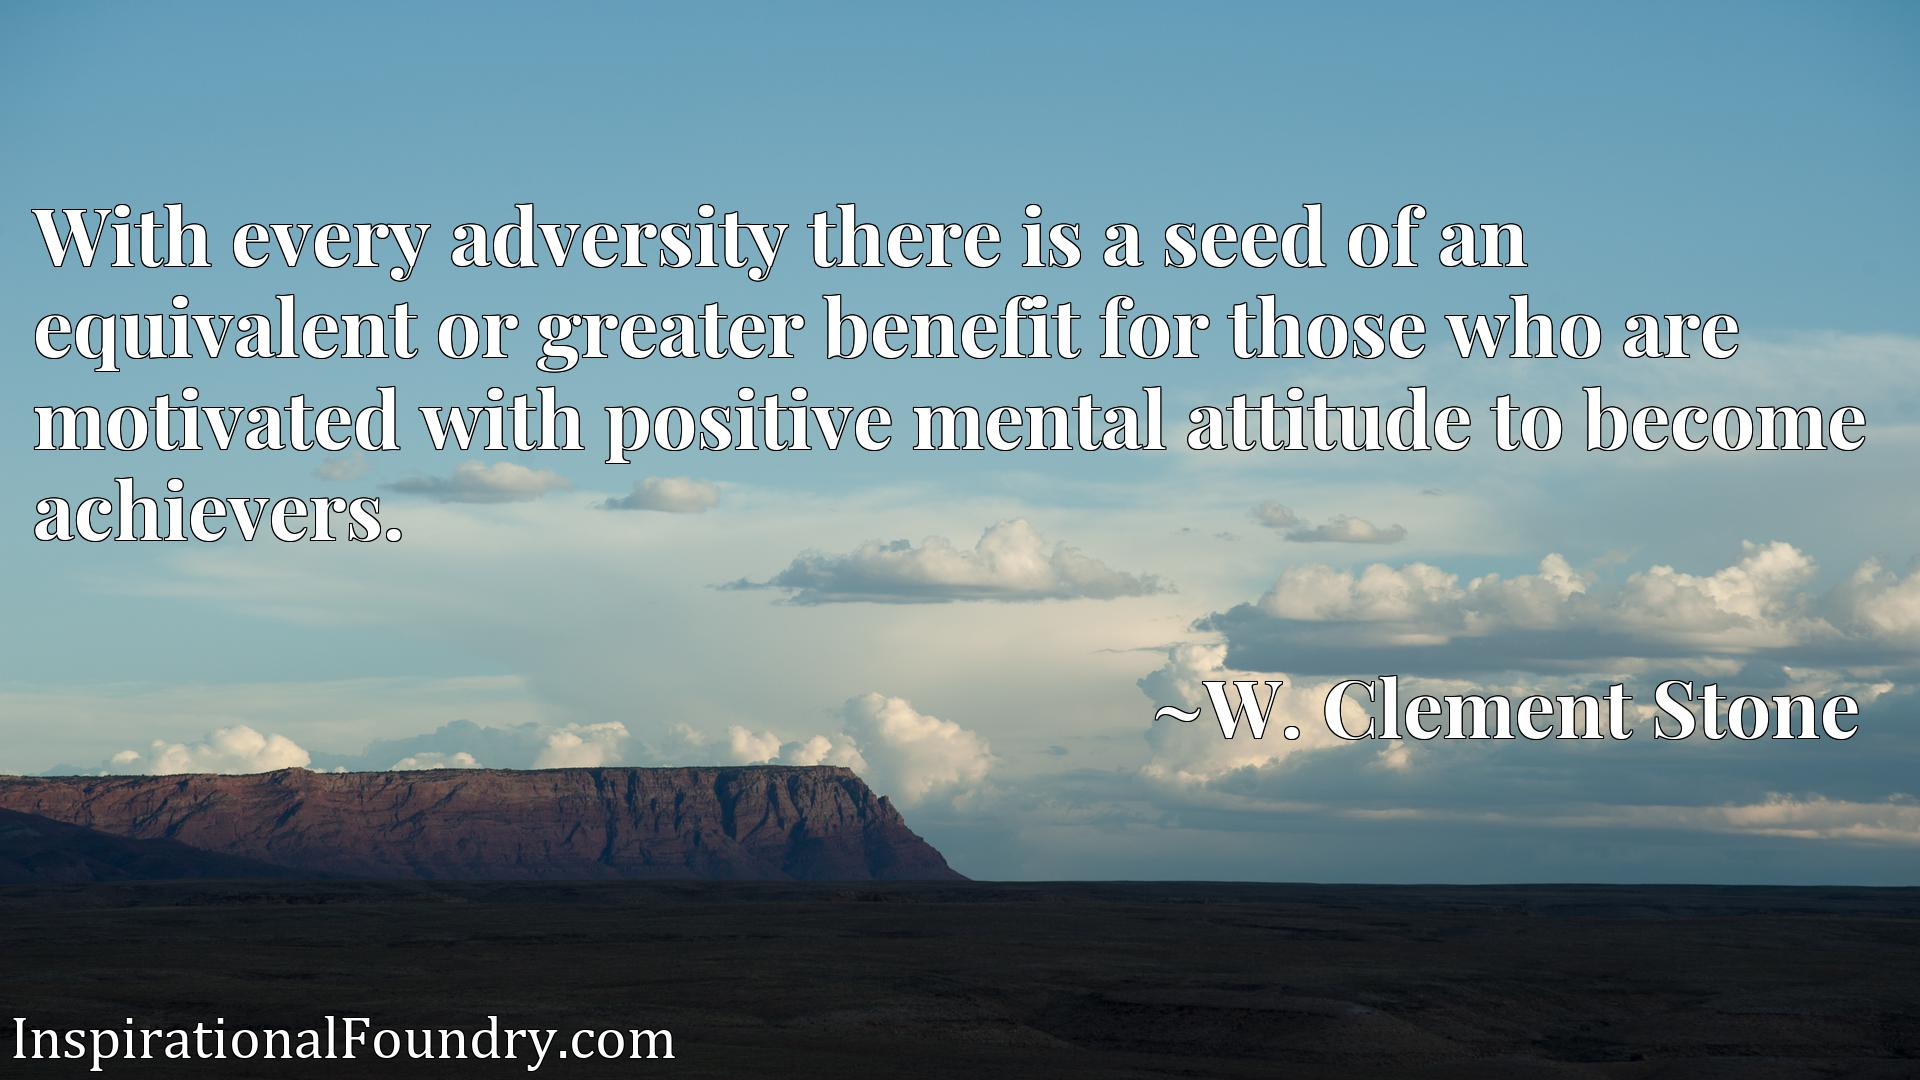 With every adversity there is a seed of an equivalent or greater benefit for those who are motivated with positive mental attitude to become achievers.